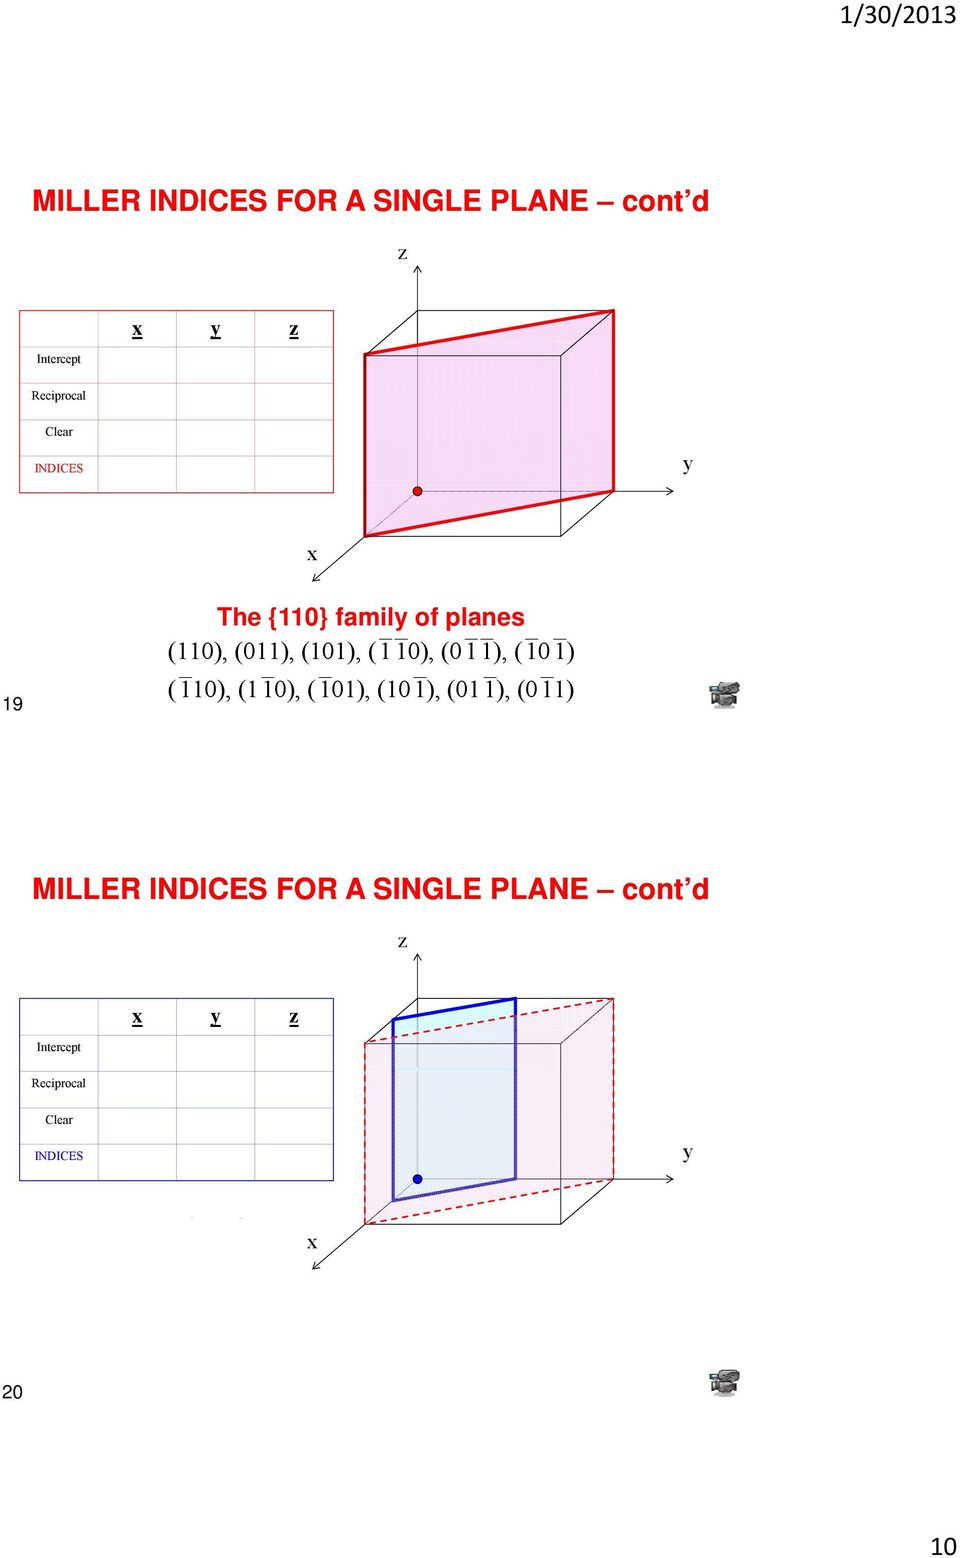 (011), (101) (110), (110), (101), (101), (011), (011) MILLER INDICES FOR A SINGLE